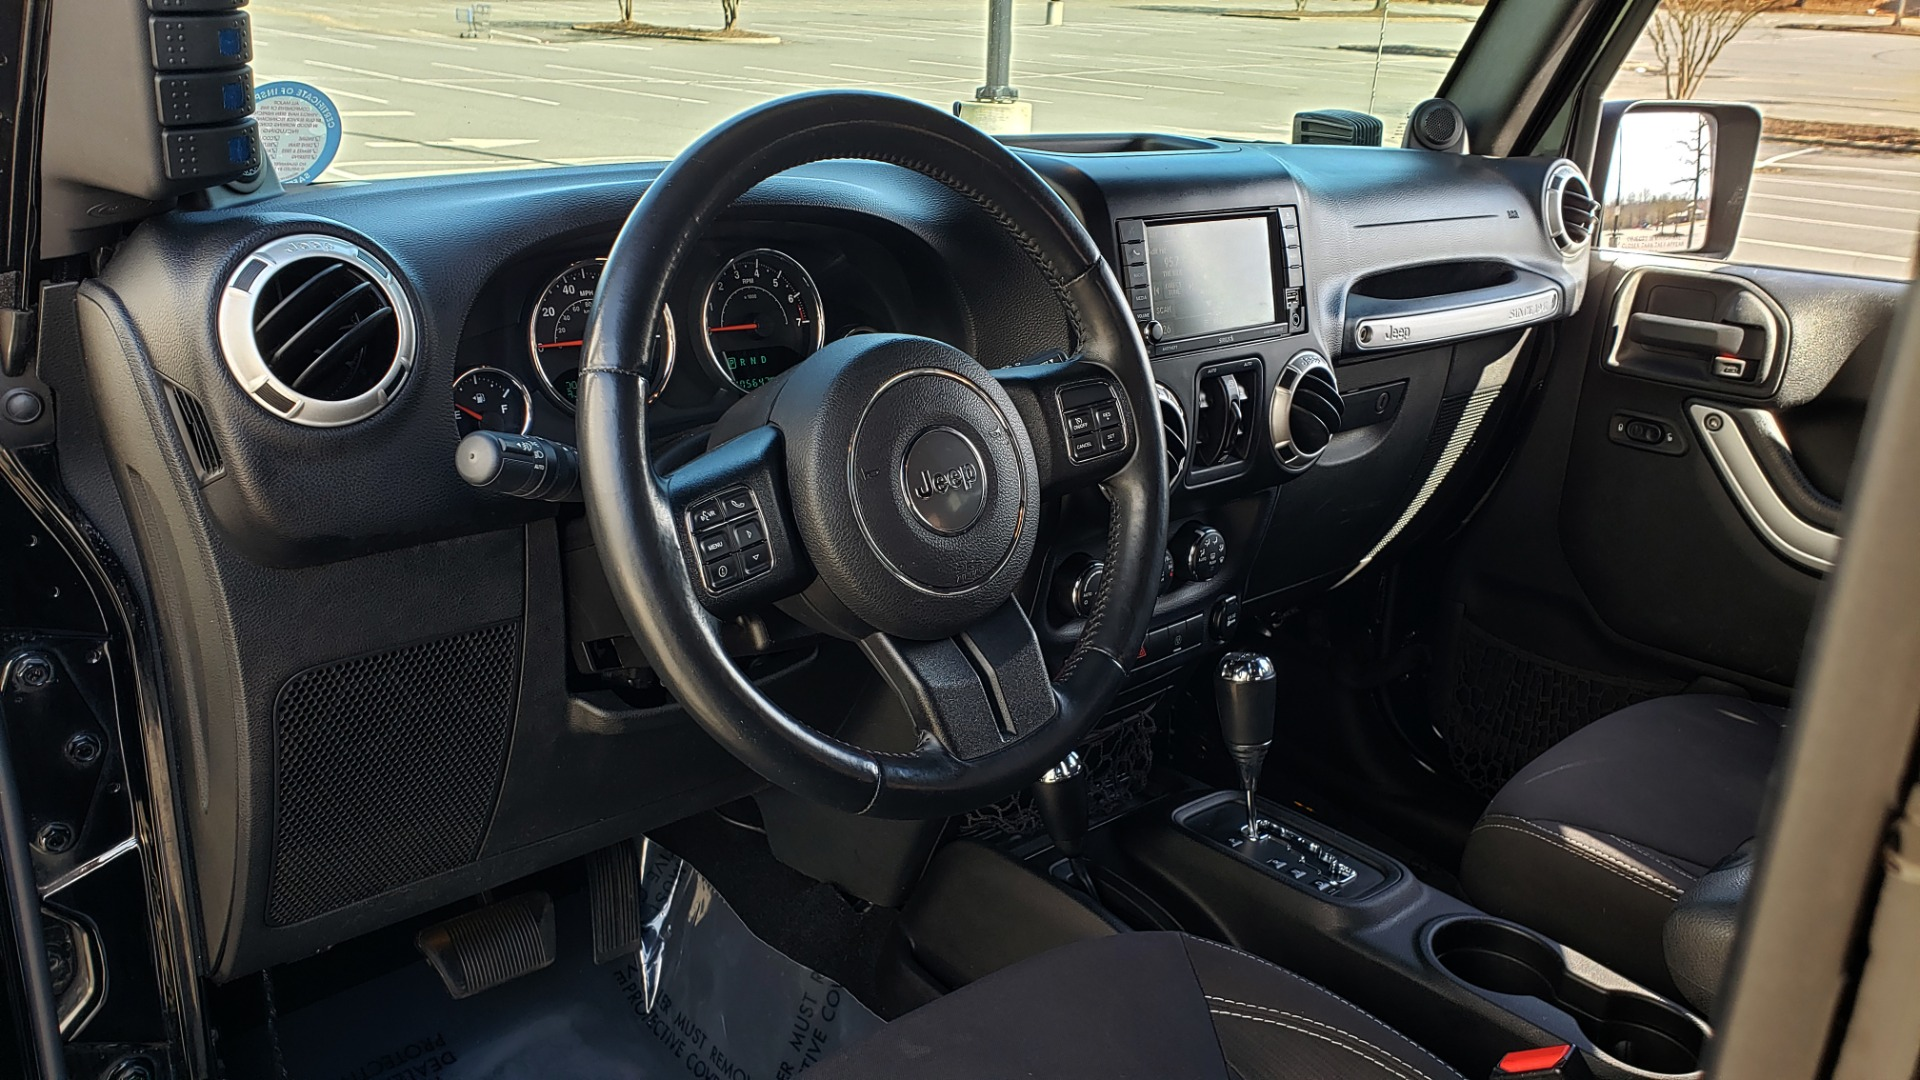 Used 2014 Jeep WRANGLER UNLIMITED SAHARA 4X4 / 3.6L V6 / 5-SPD AUTO / NAV / TOW PKG / SOFT-TOP for sale $24,795 at Formula Imports in Charlotte NC 28227 43